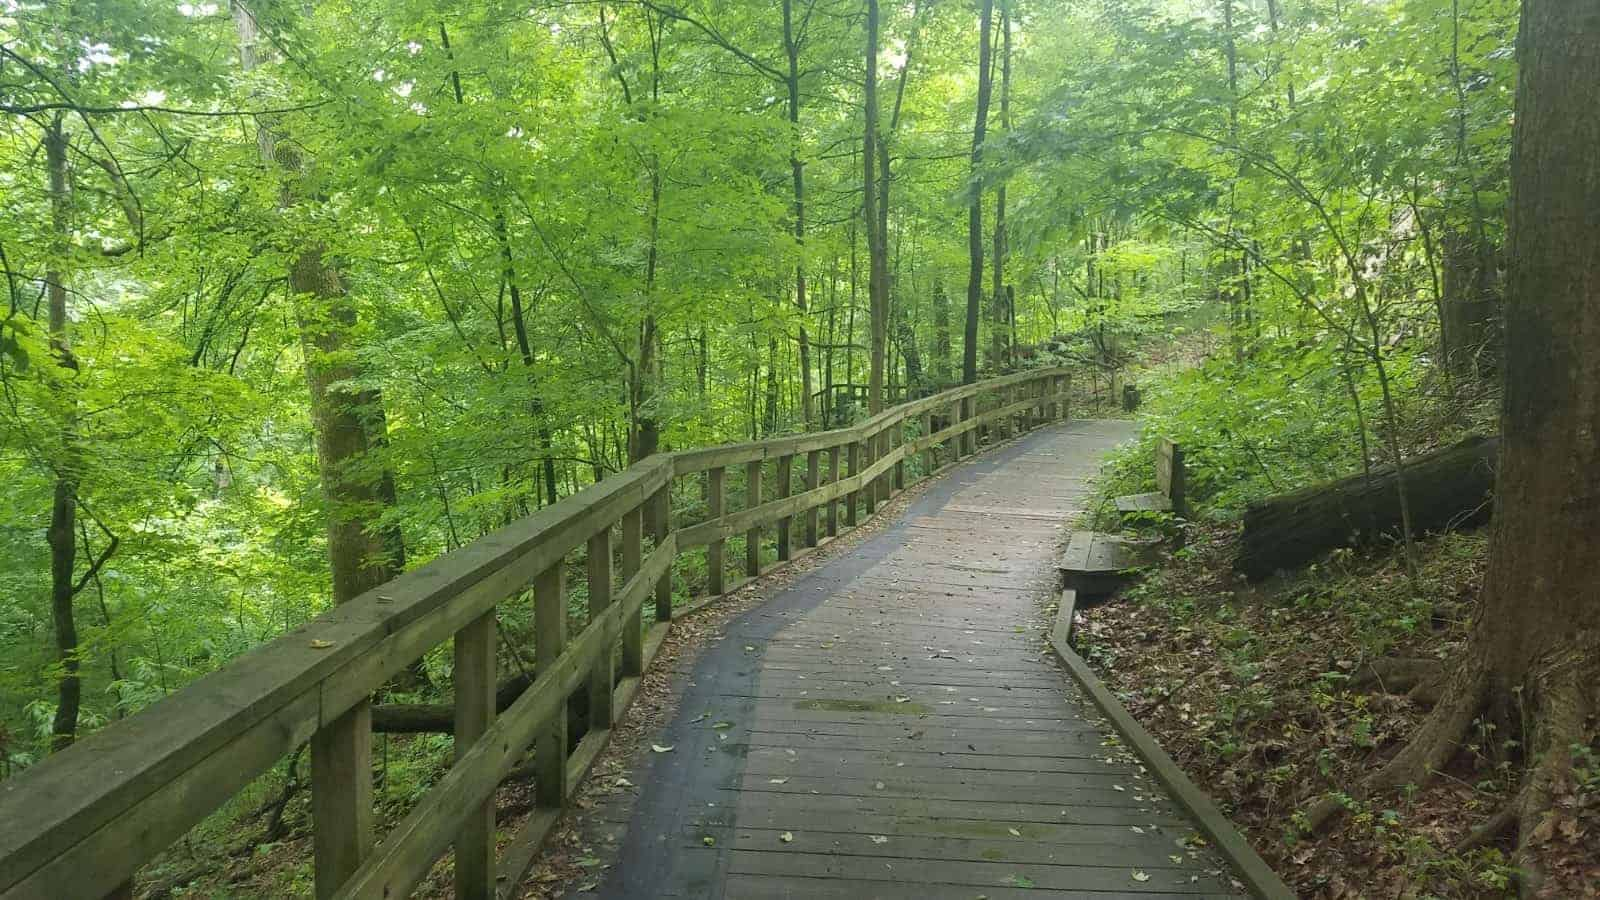 Check Out These Nature Walks And Scenic Hiking Trails In Columbus